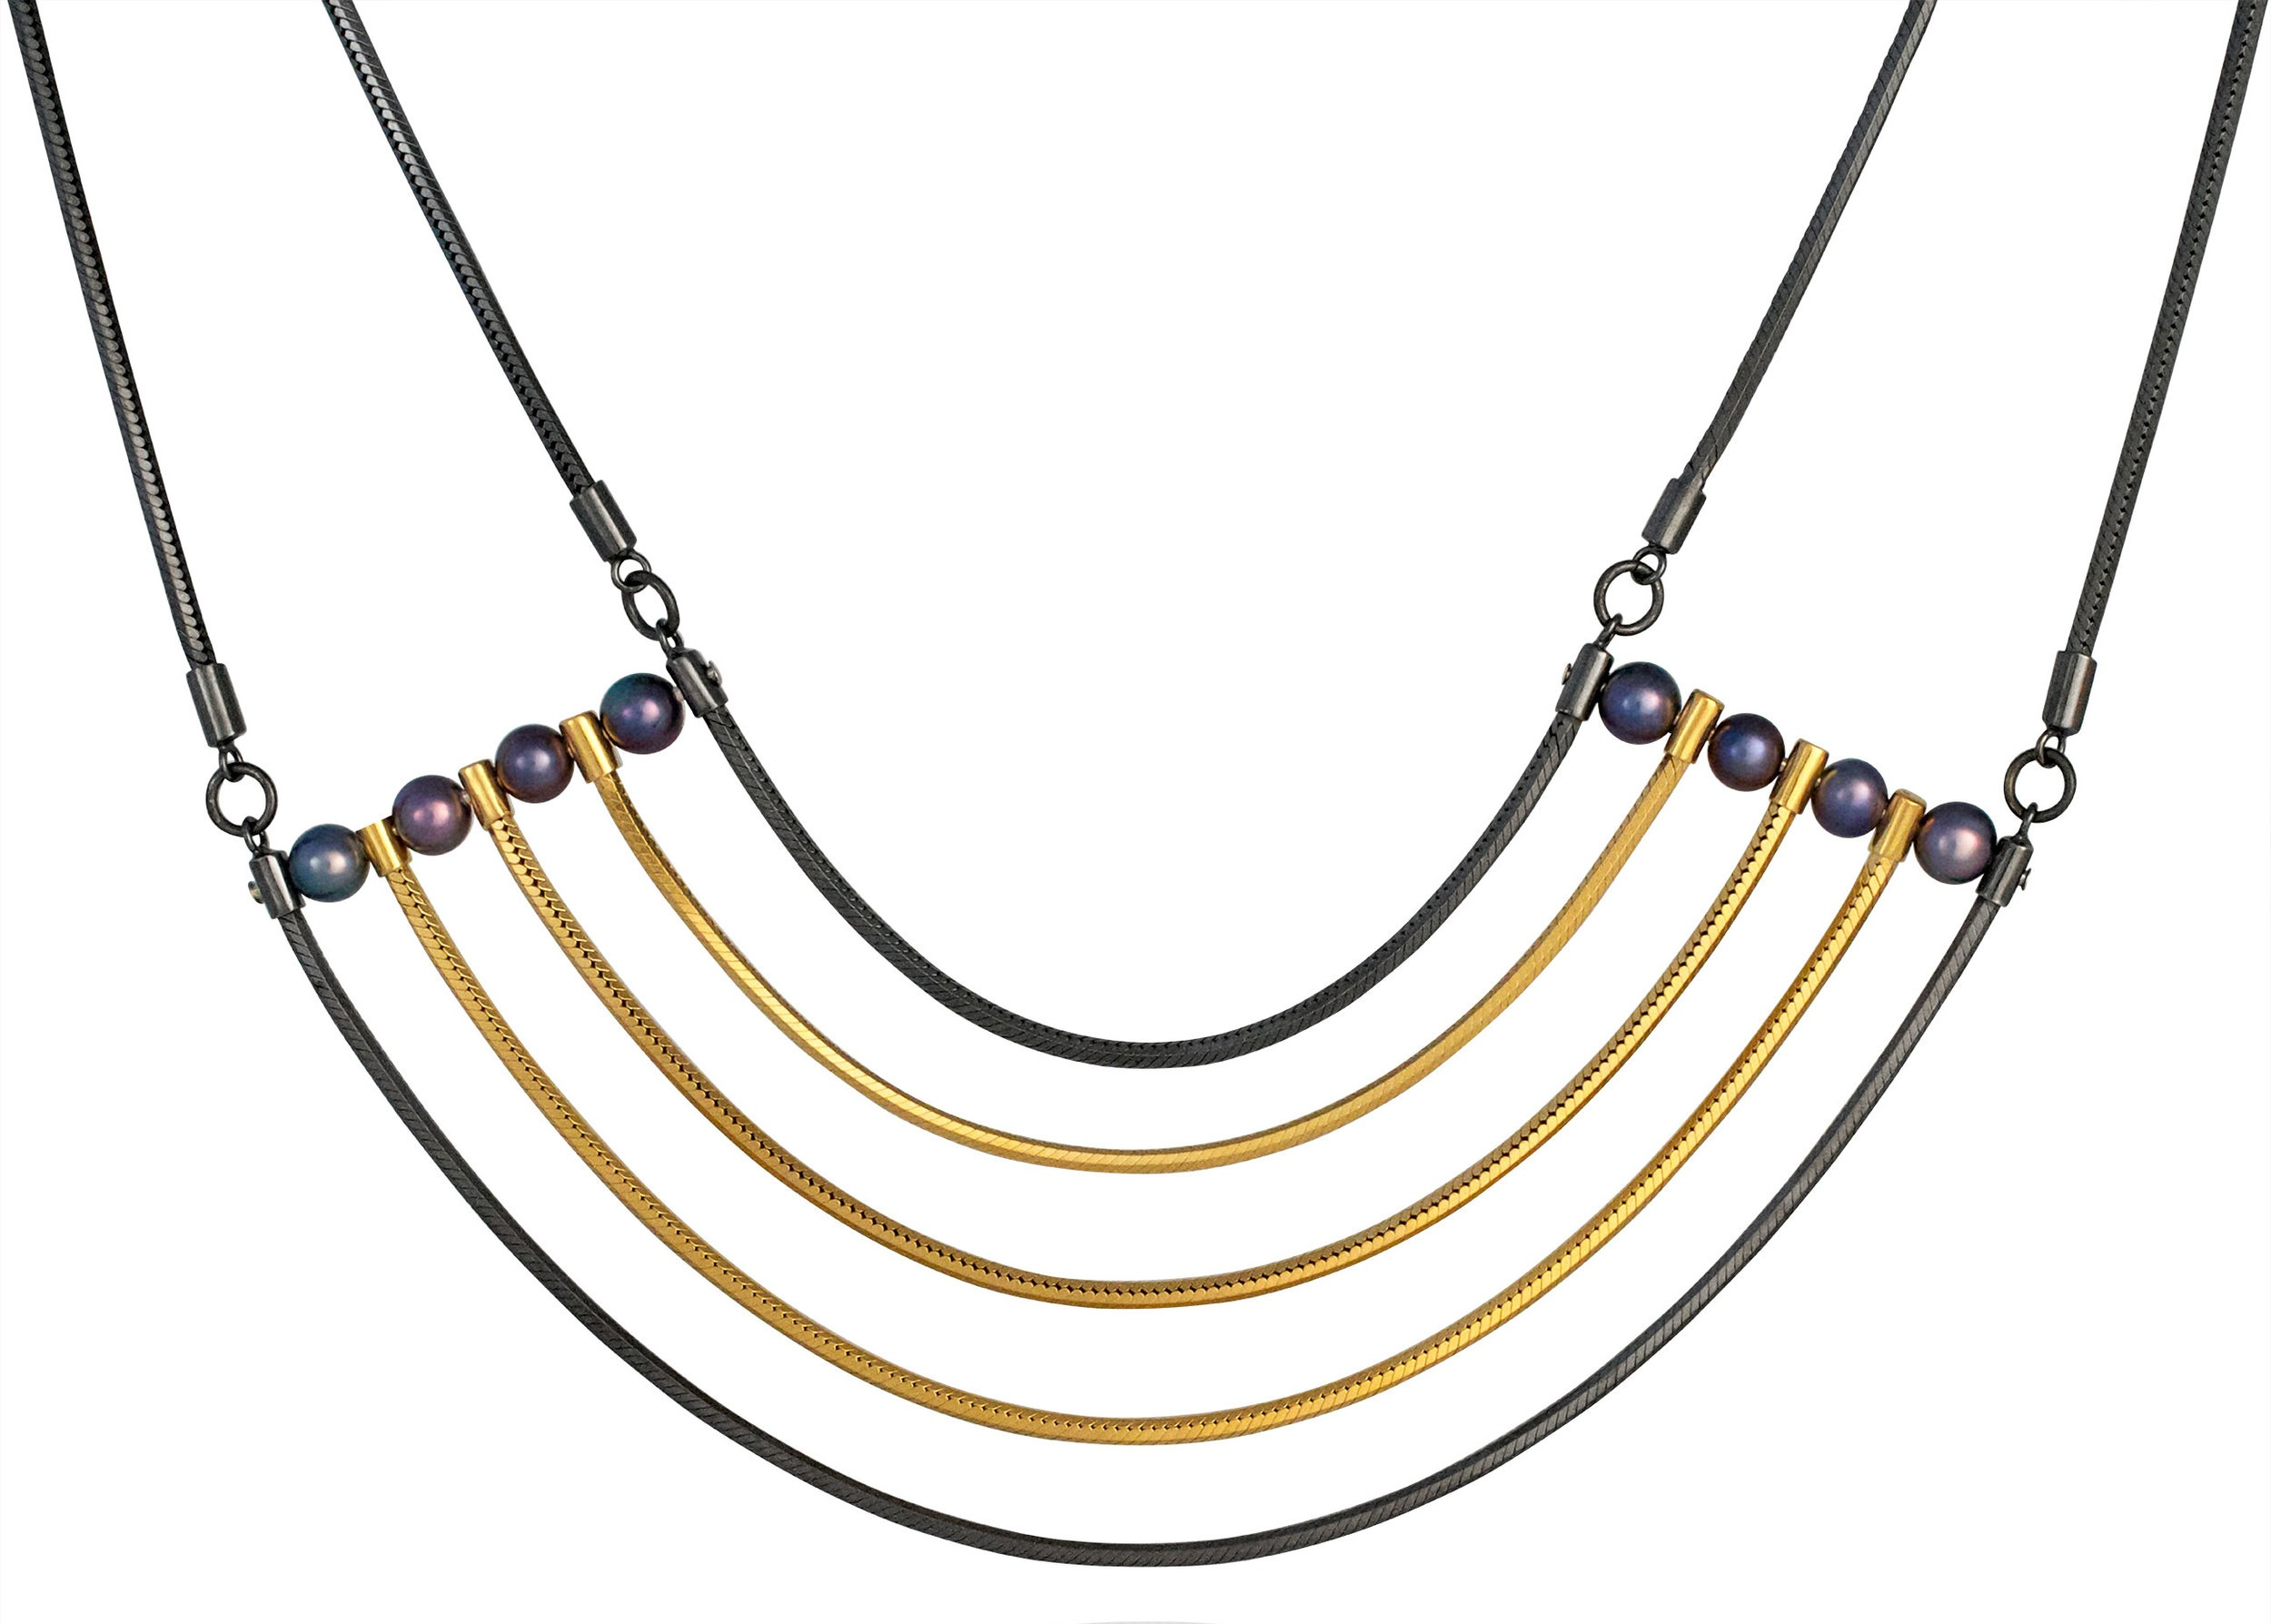 Orbit Necklace, by CARA TONKIN